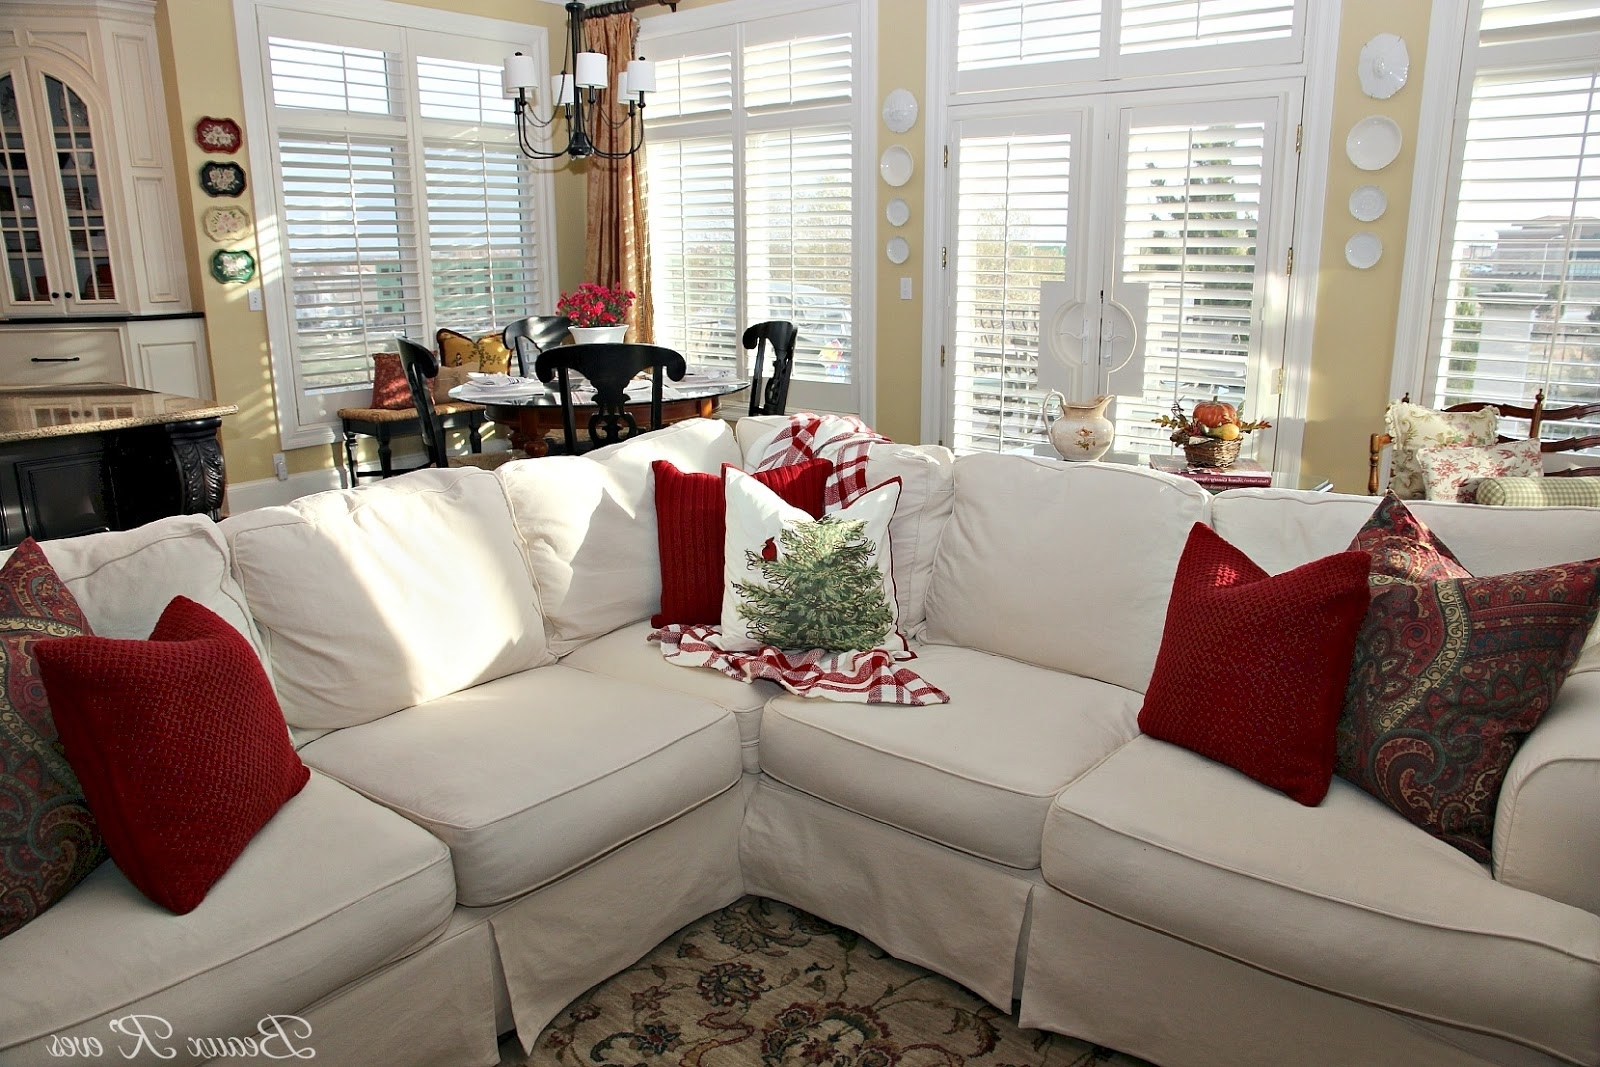 Popular Jcpenney Sectional Sofas In Beaux R'eves: Pottery Barn Knock Off Jcpenney Slipcovered (View 16 of 20)